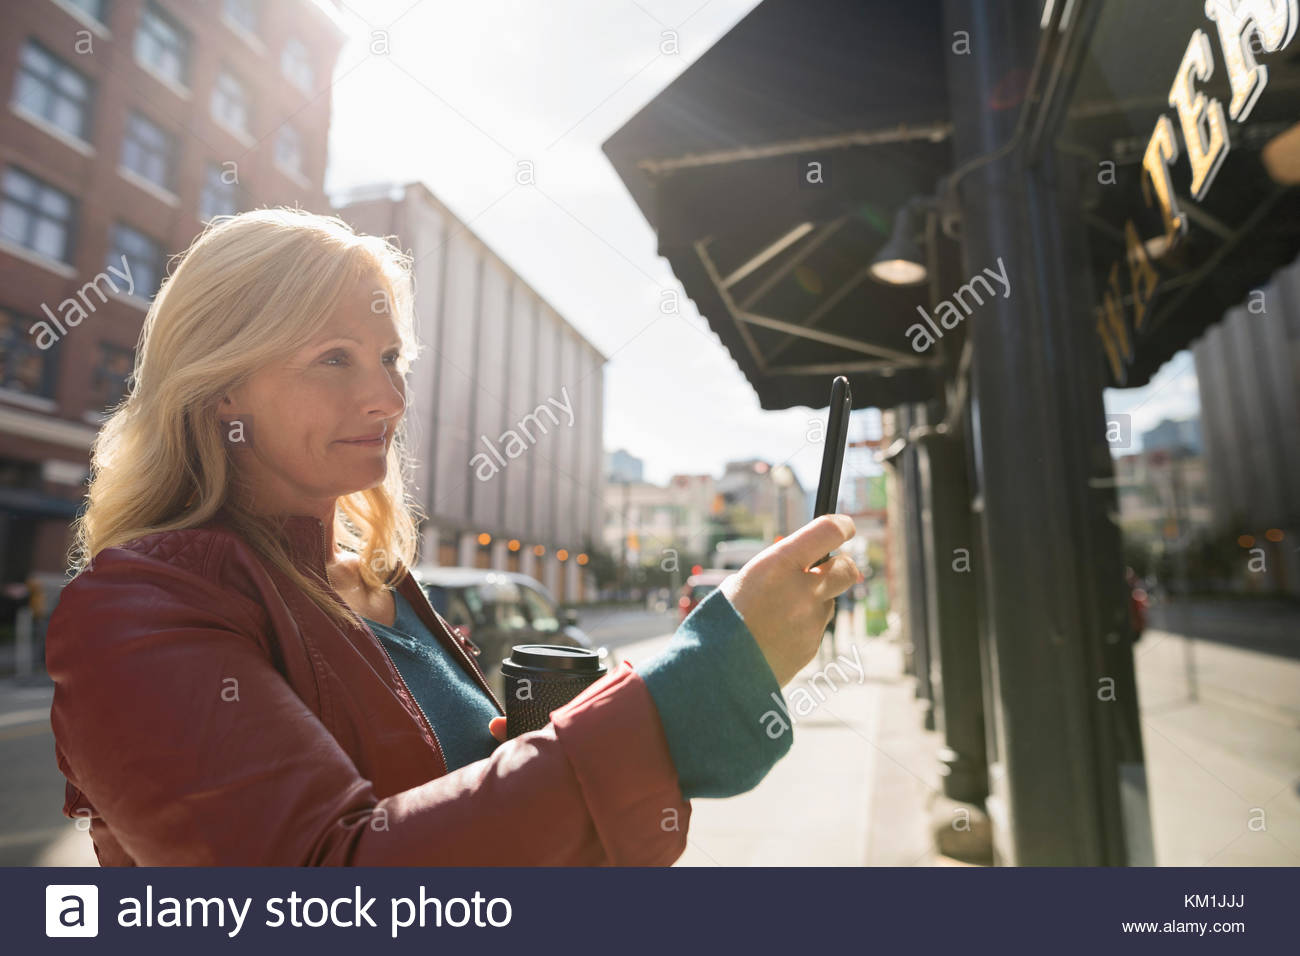 Mature woman with coffee using camera phone at sunny urban window storefront - Stock Image